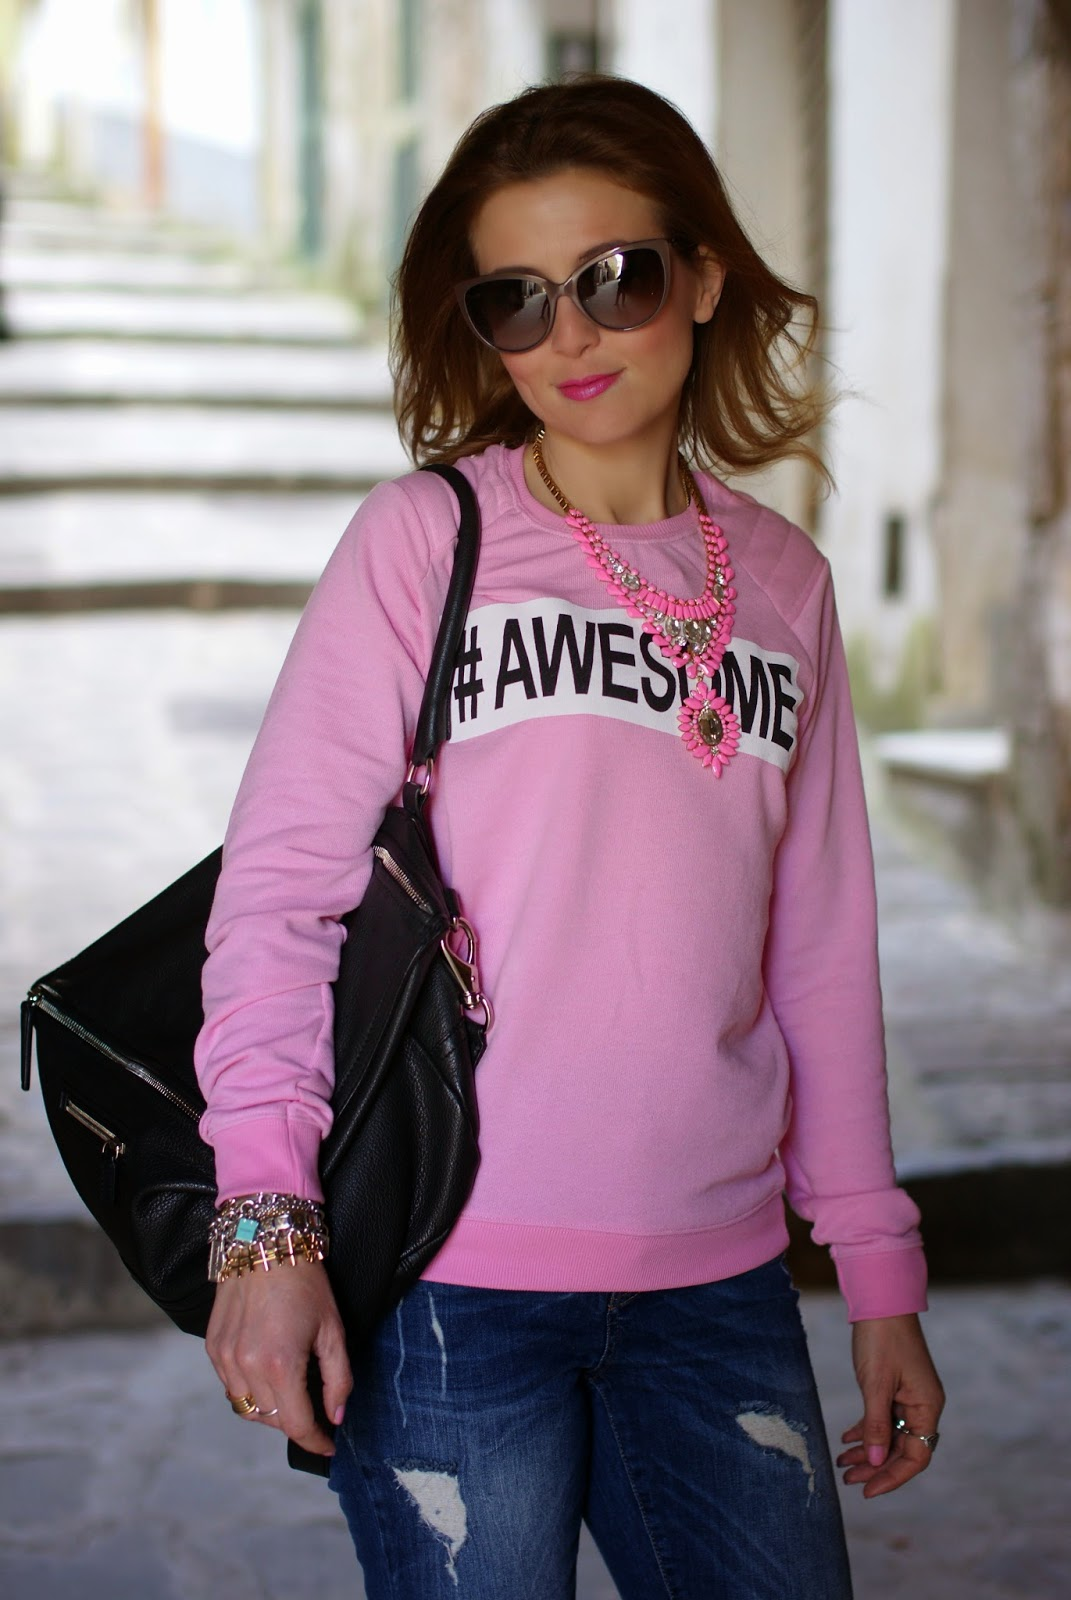 Awesome sweatshirt, Givenchy Pandora bag, Fashion and Cookies, fashion blogger